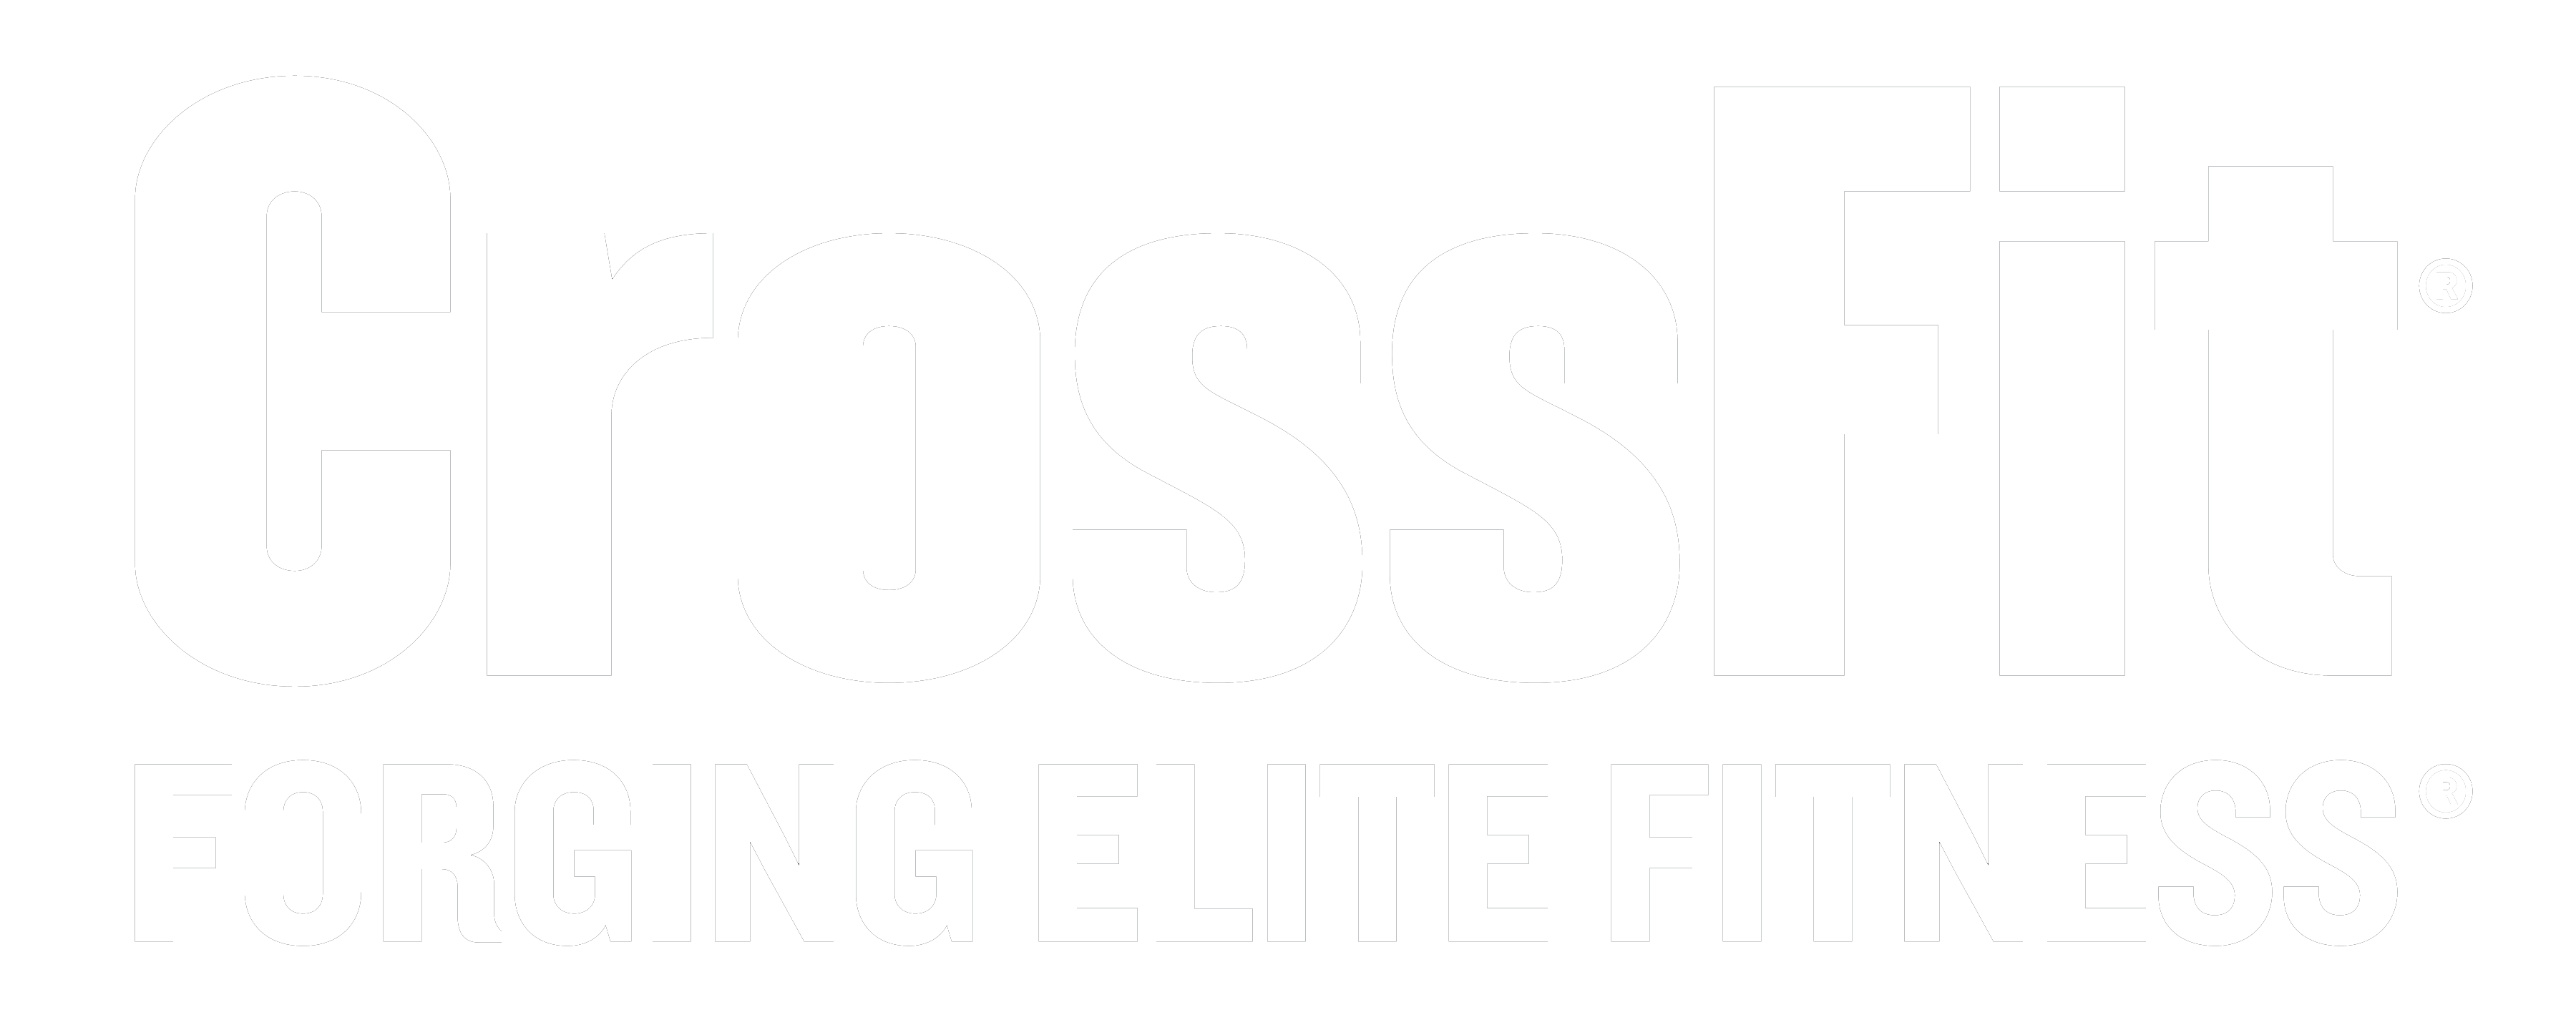 CrossFit: Forging Elite Fitness